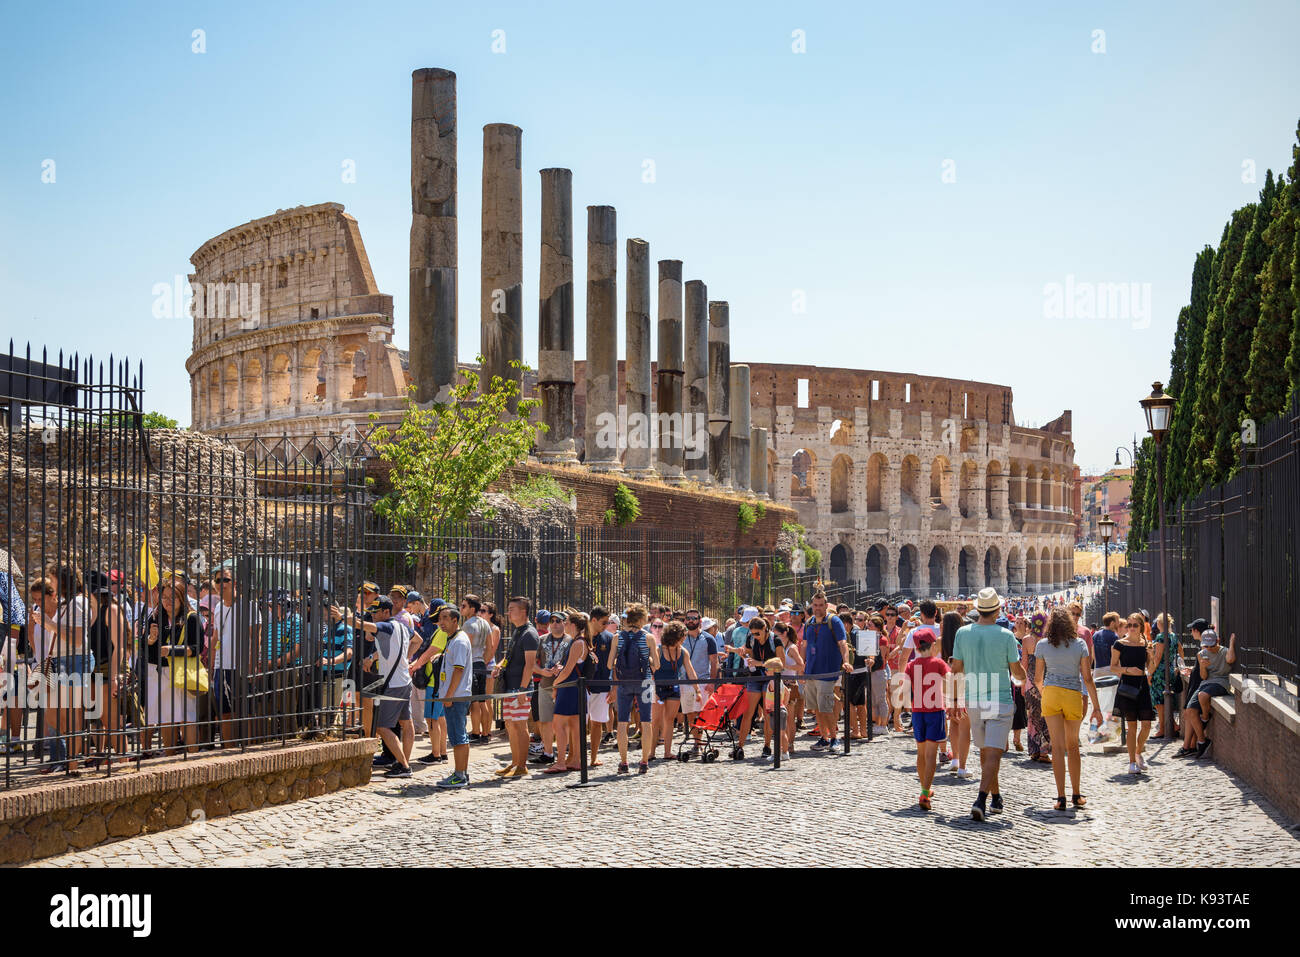 Hordes of tourists queuing on Via Sacra to enter the forum, Colosseum in background, Rome, Italy - Stock Image